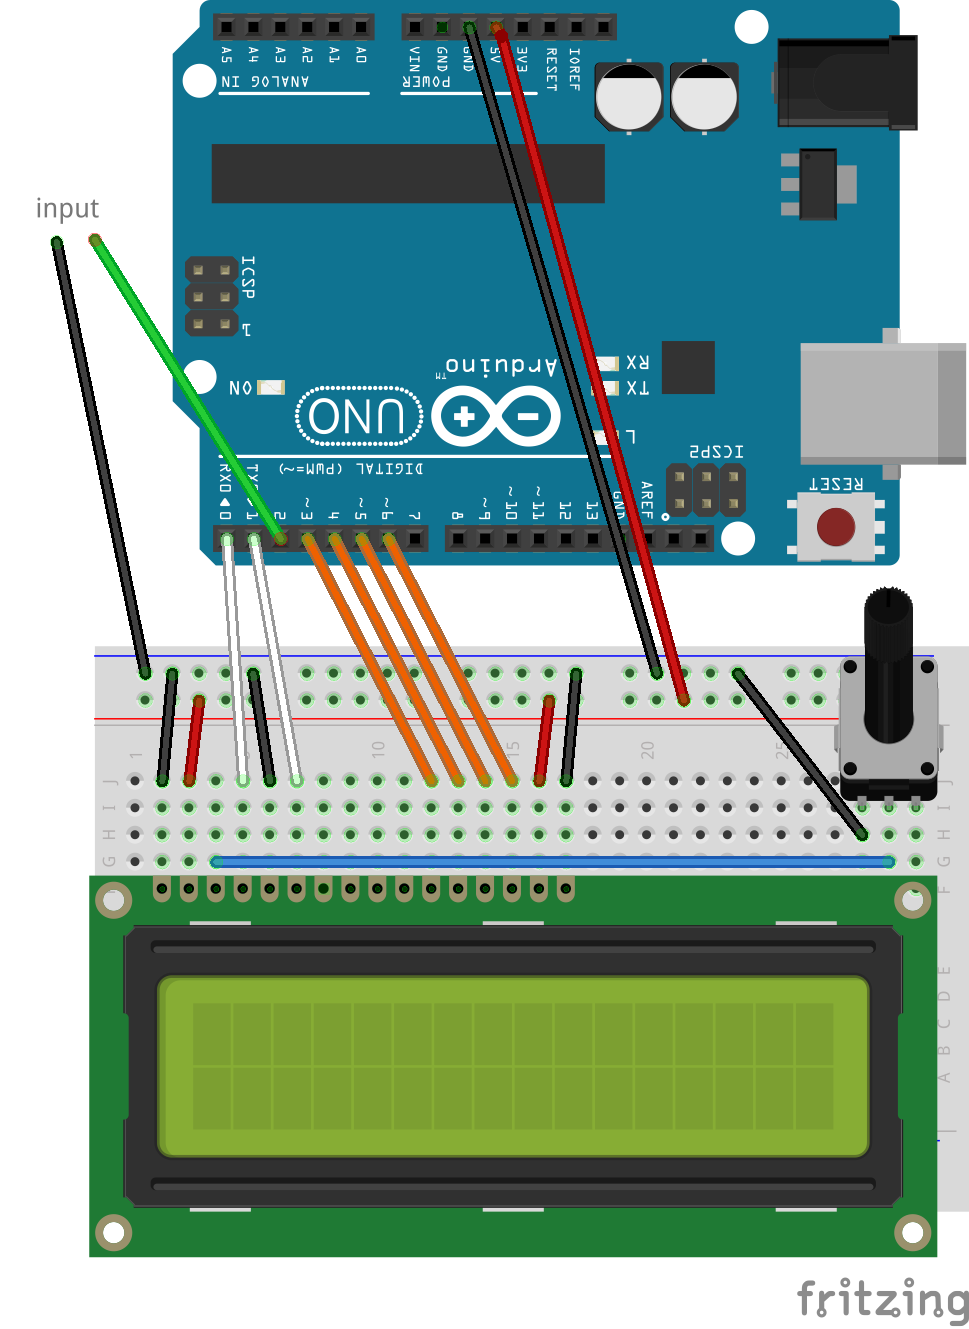 Arduino development with embedXcode in Xcode - Stack Overflow